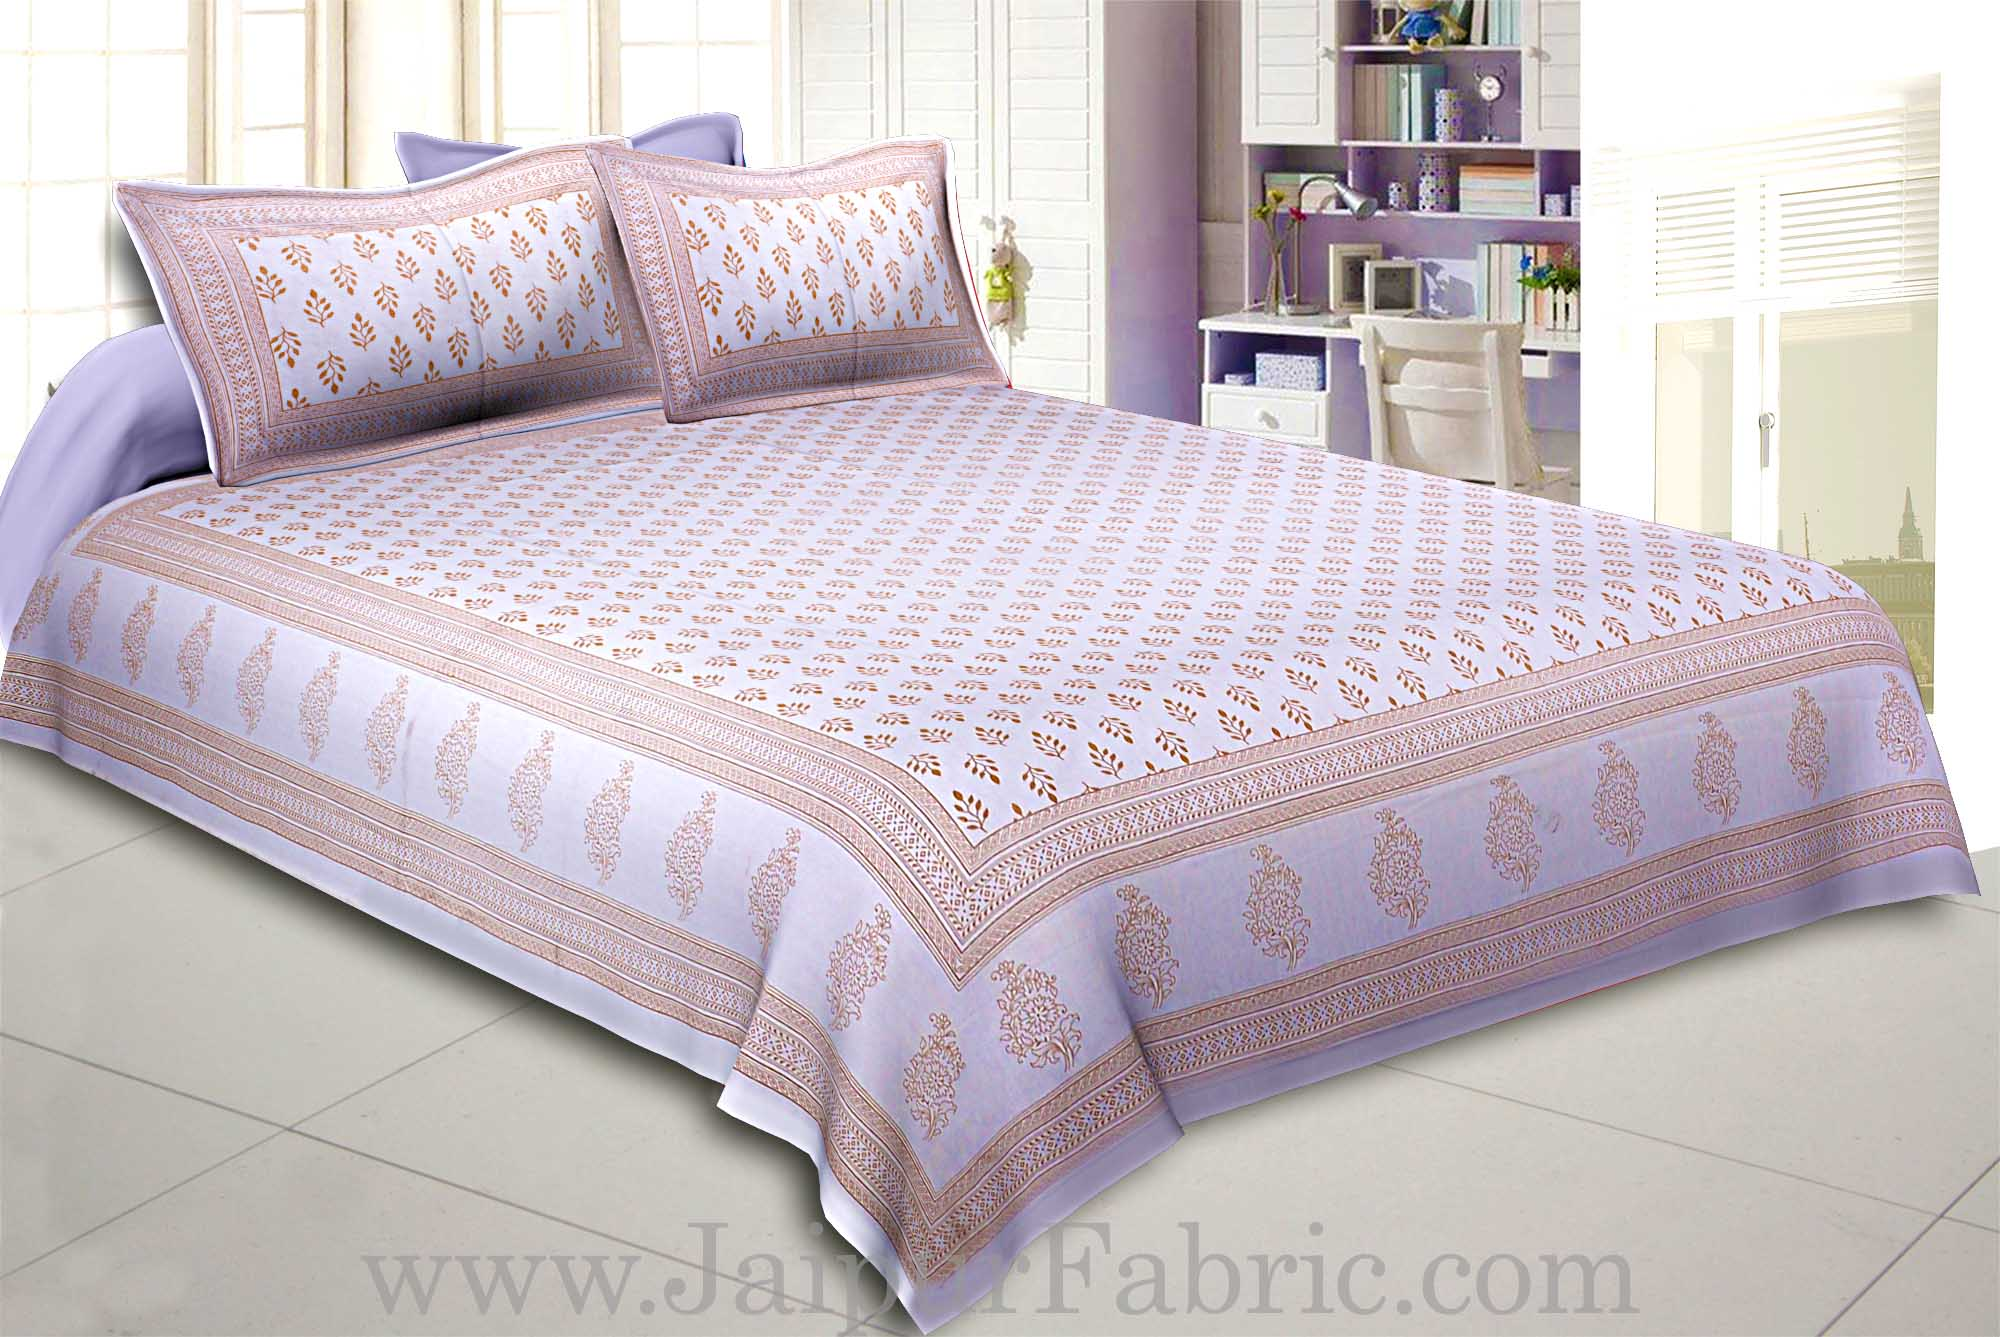 Double Bedsheet Off-white Base Golden Leafy Block Print